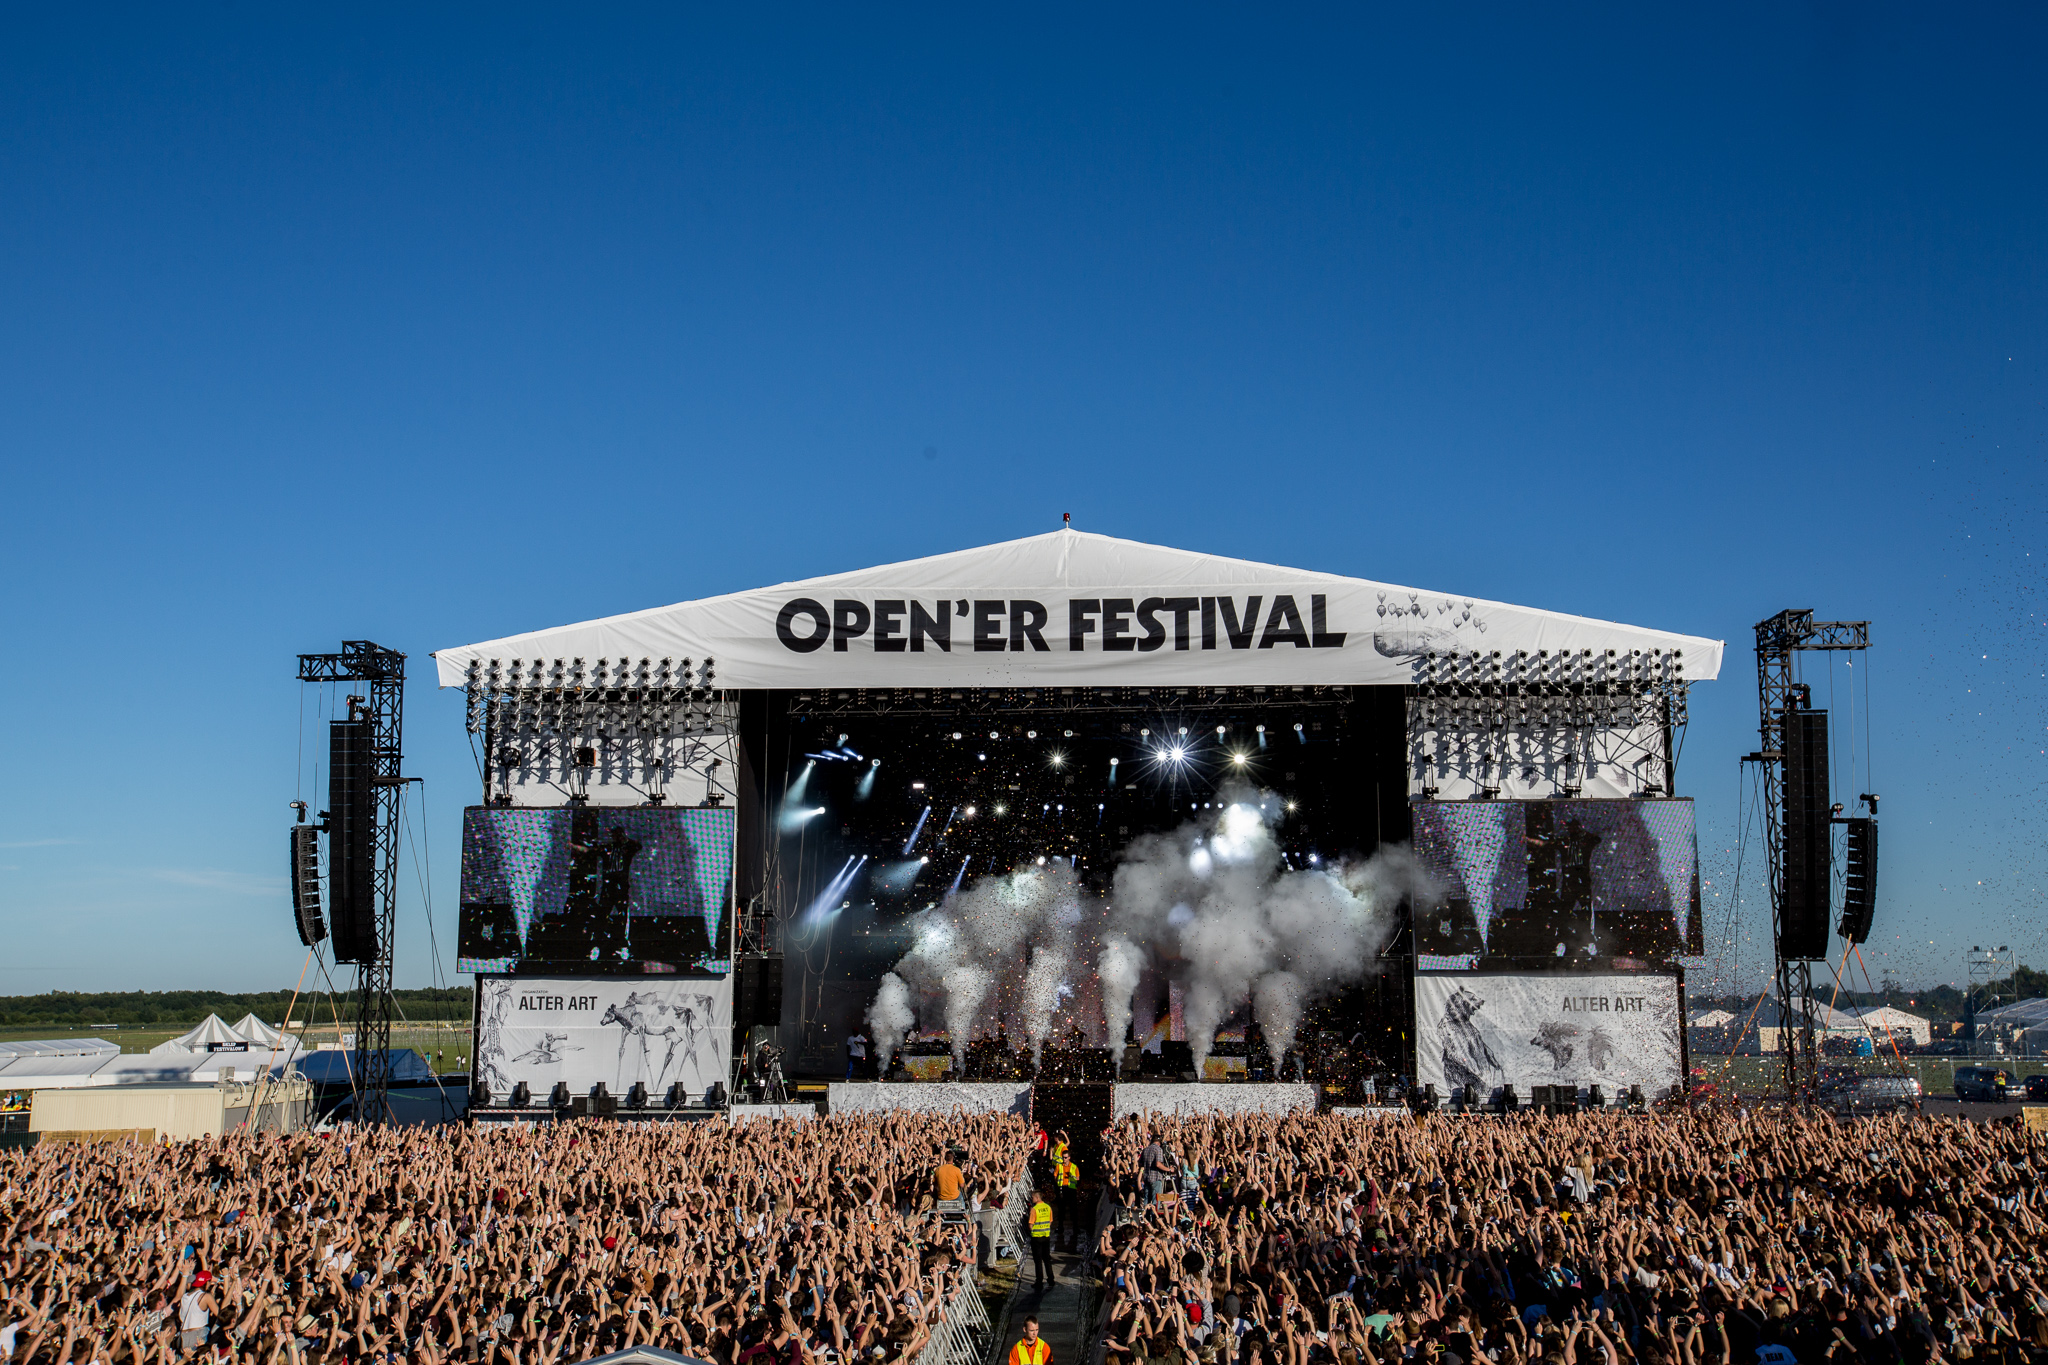 © Open'er Festival - The first day of Open'er Festival, Gdynia, Poland_02